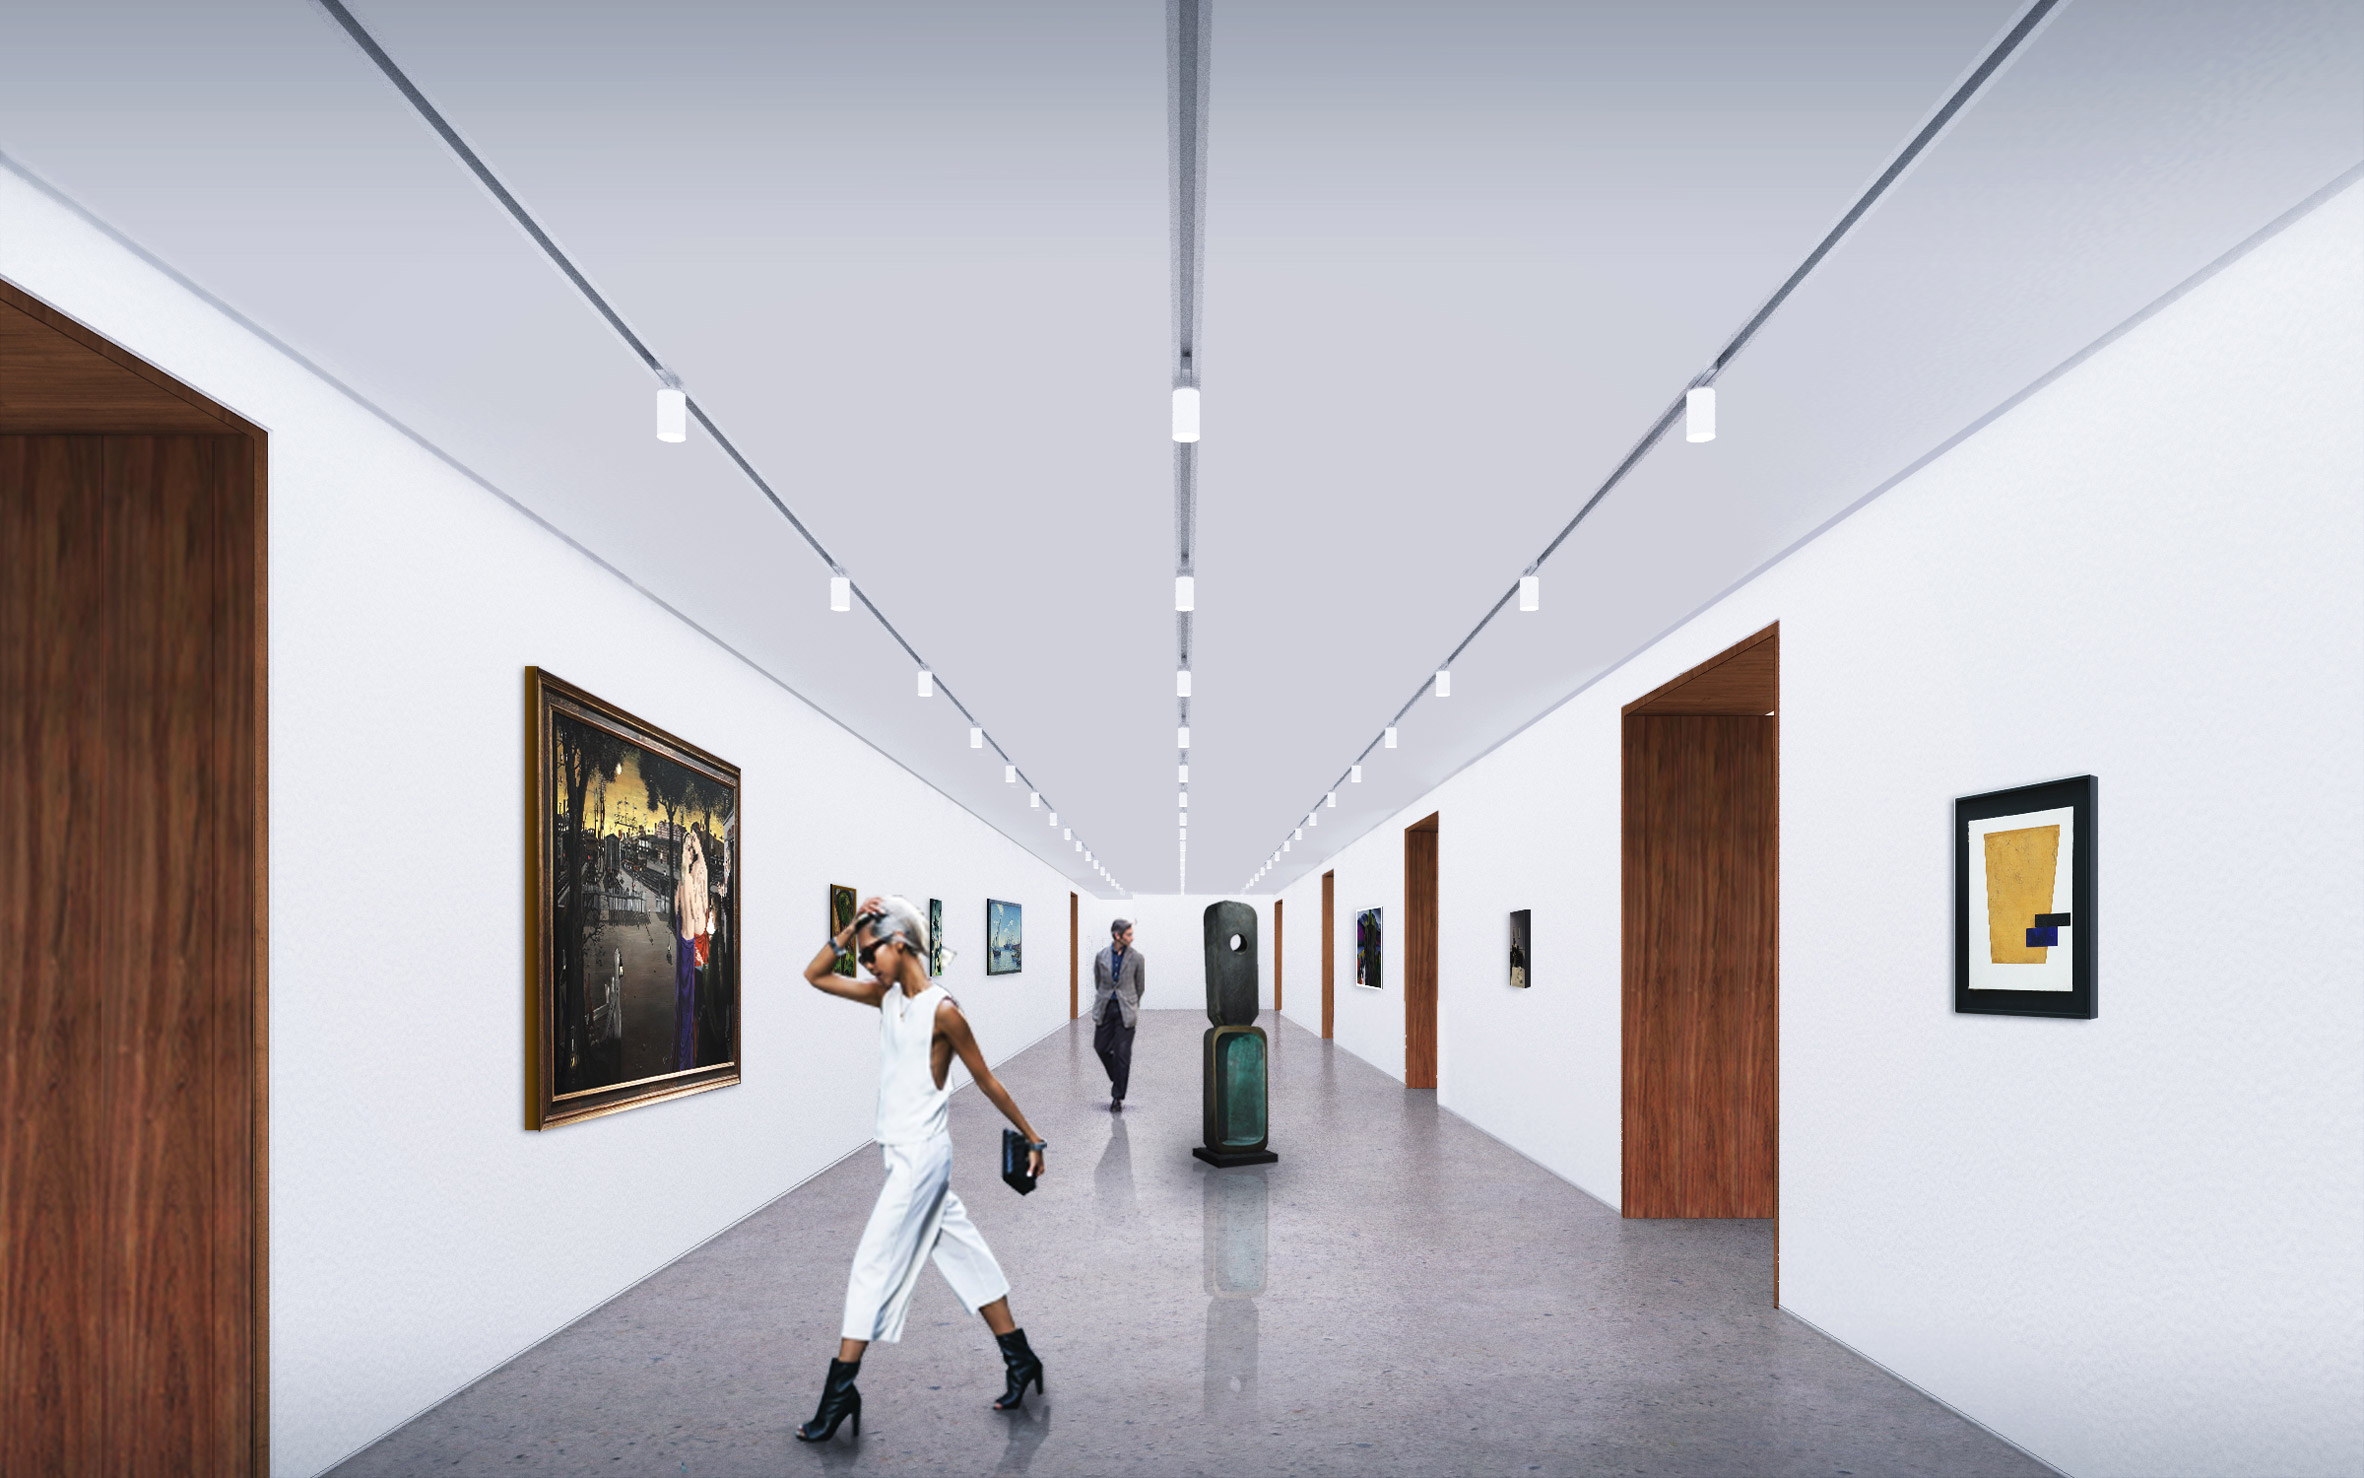 Sotheby's renovation and expansion by OMA